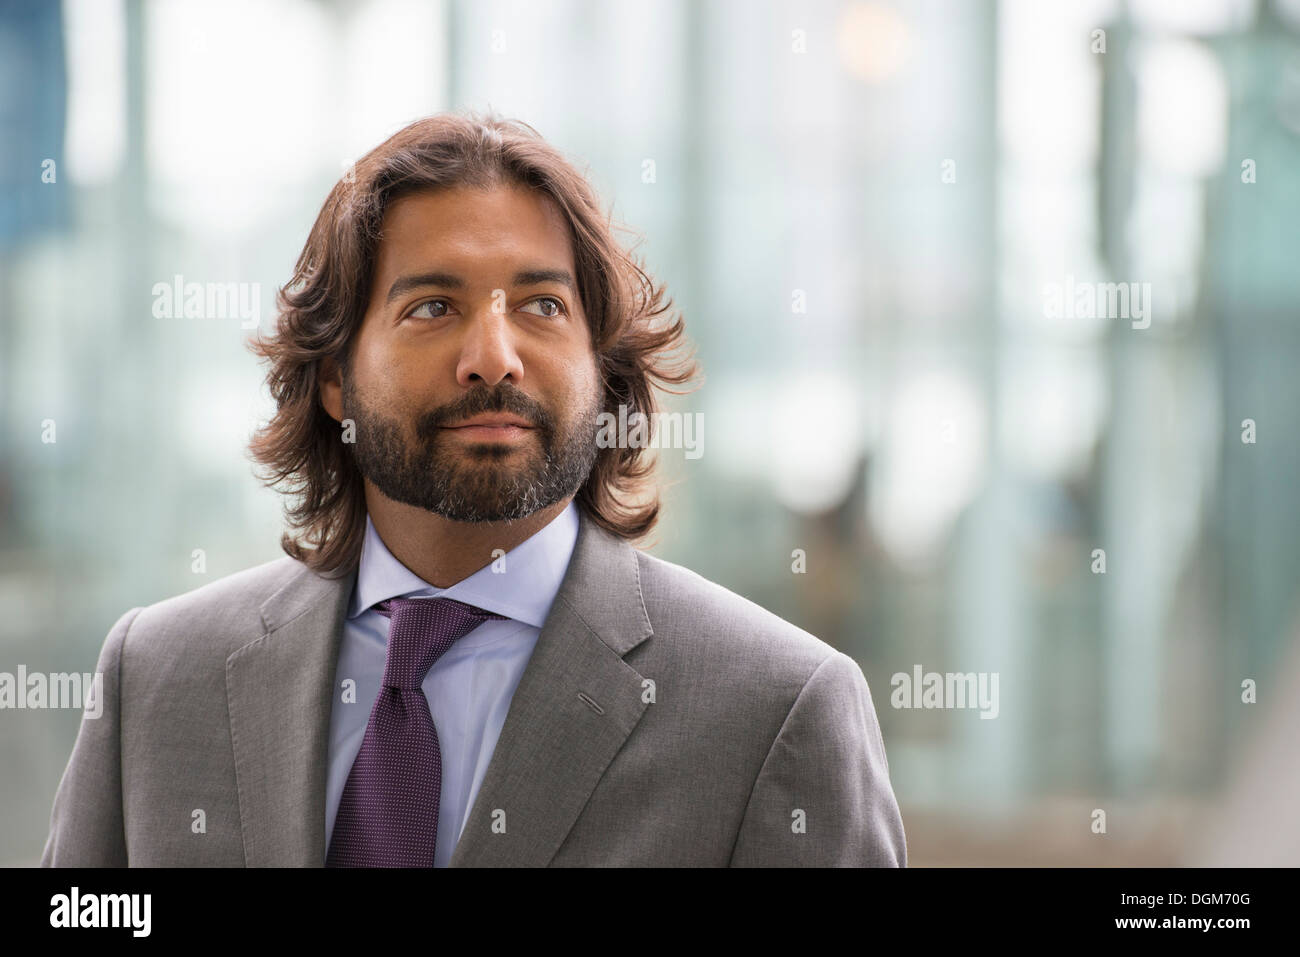 Business people out and about in the city. A Latino man in a suit jacket and purple tie. - Stock Image